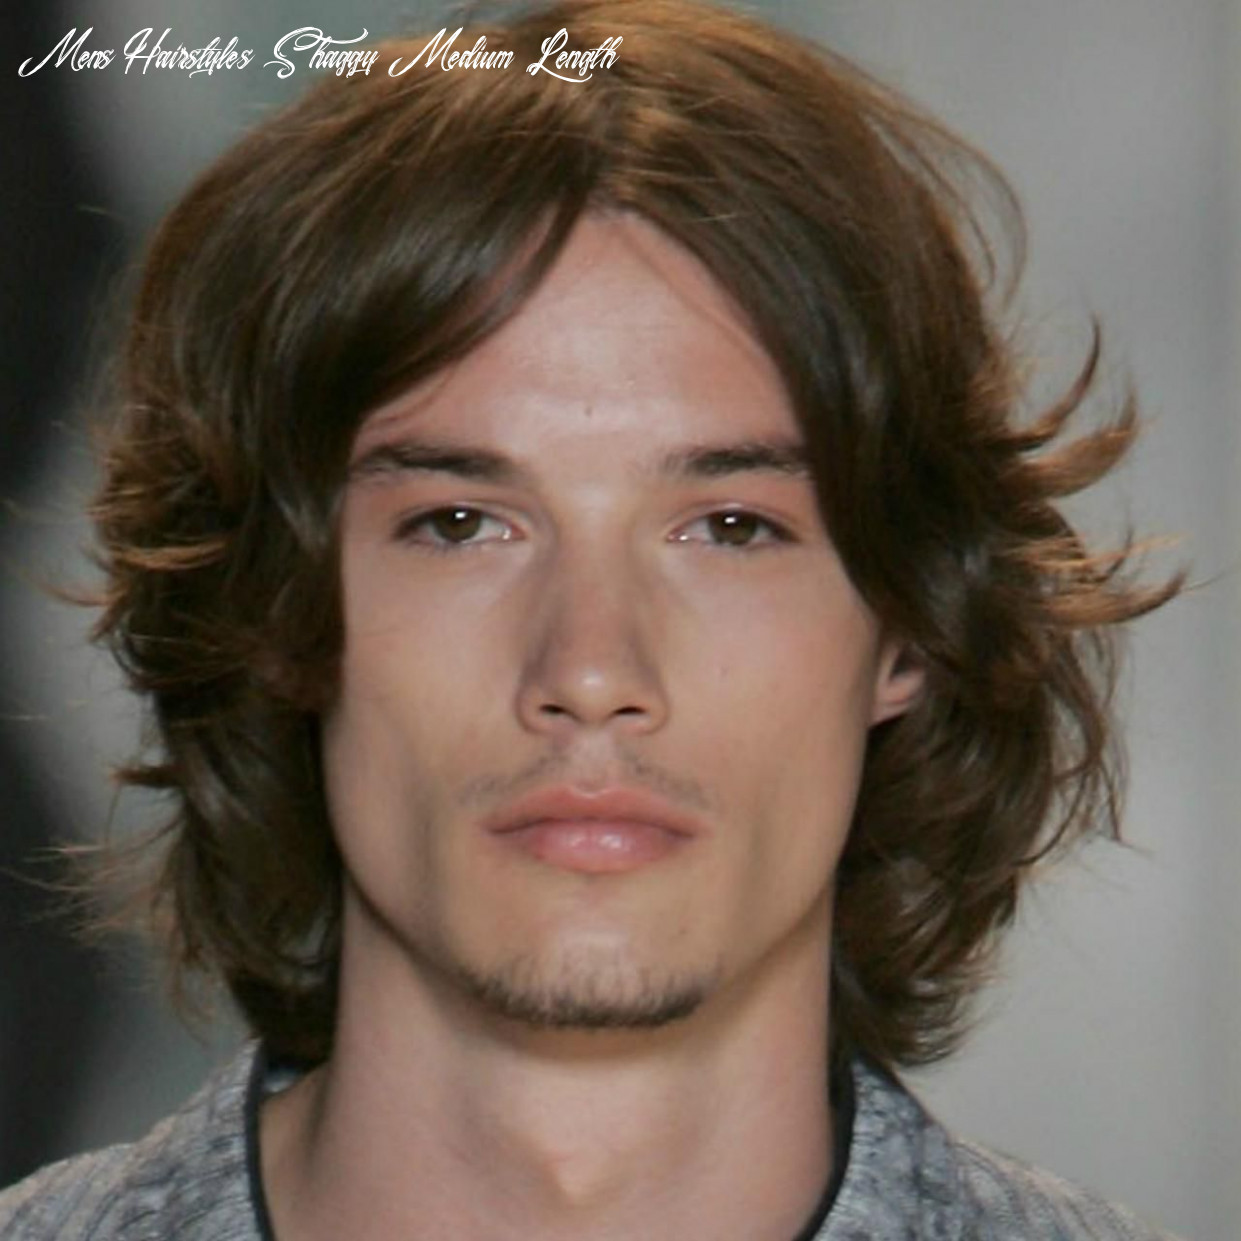 Long hairstyles for men picture gallery mens hairstyles shaggy medium length